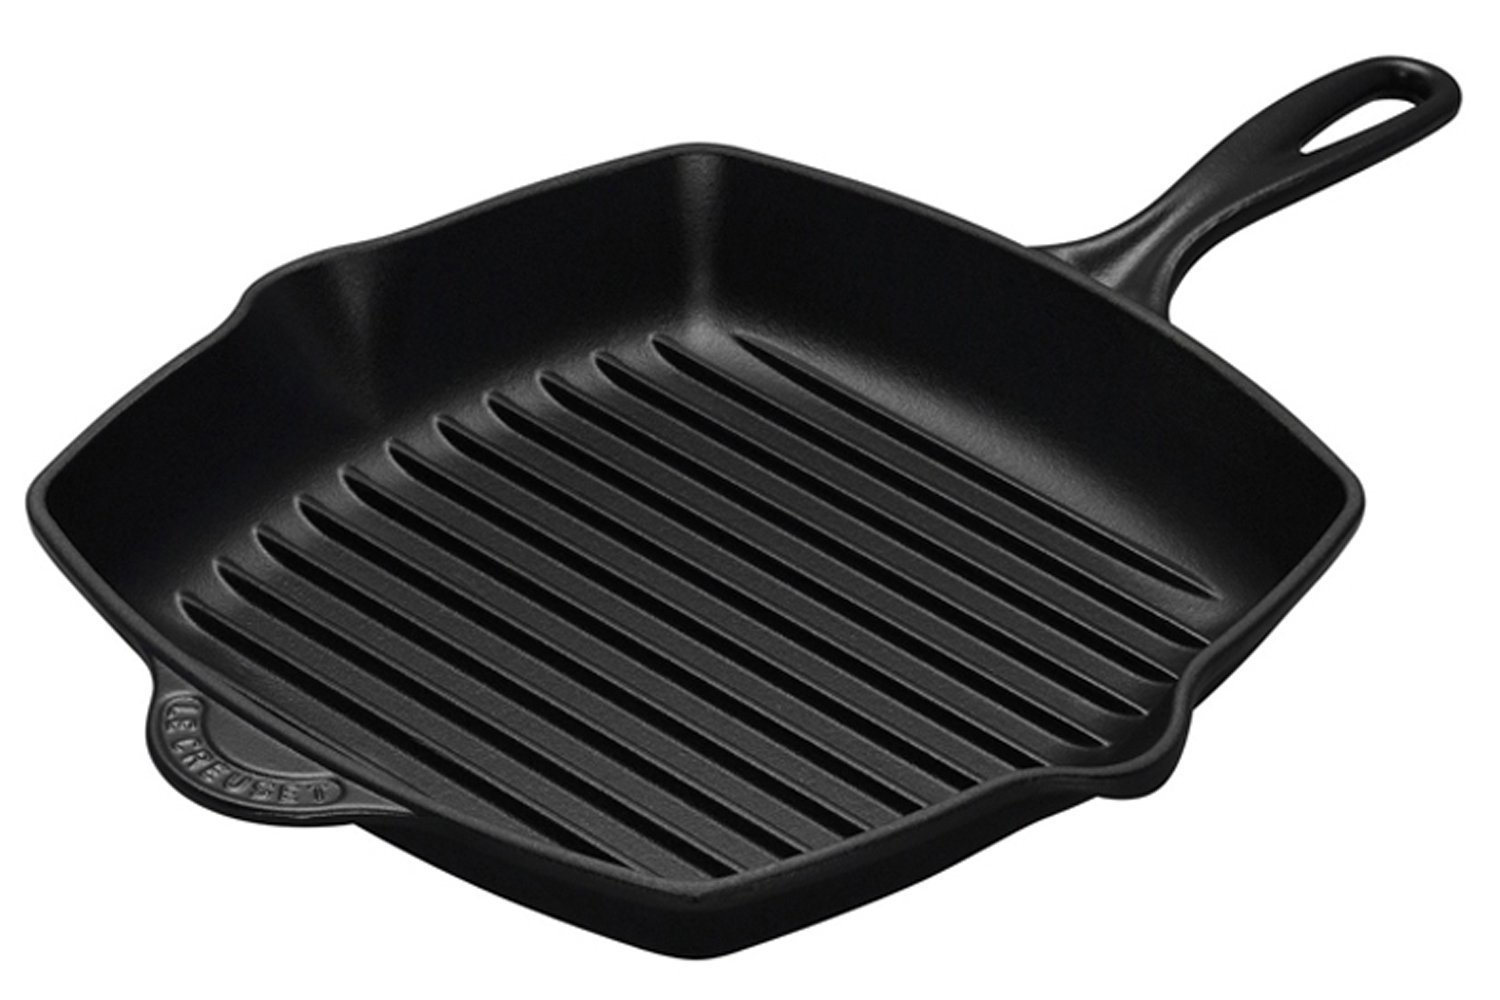 le creuset skillet grillpfanne im test profi gusseisen grillpfanne. Black Bedroom Furniture Sets. Home Design Ideas